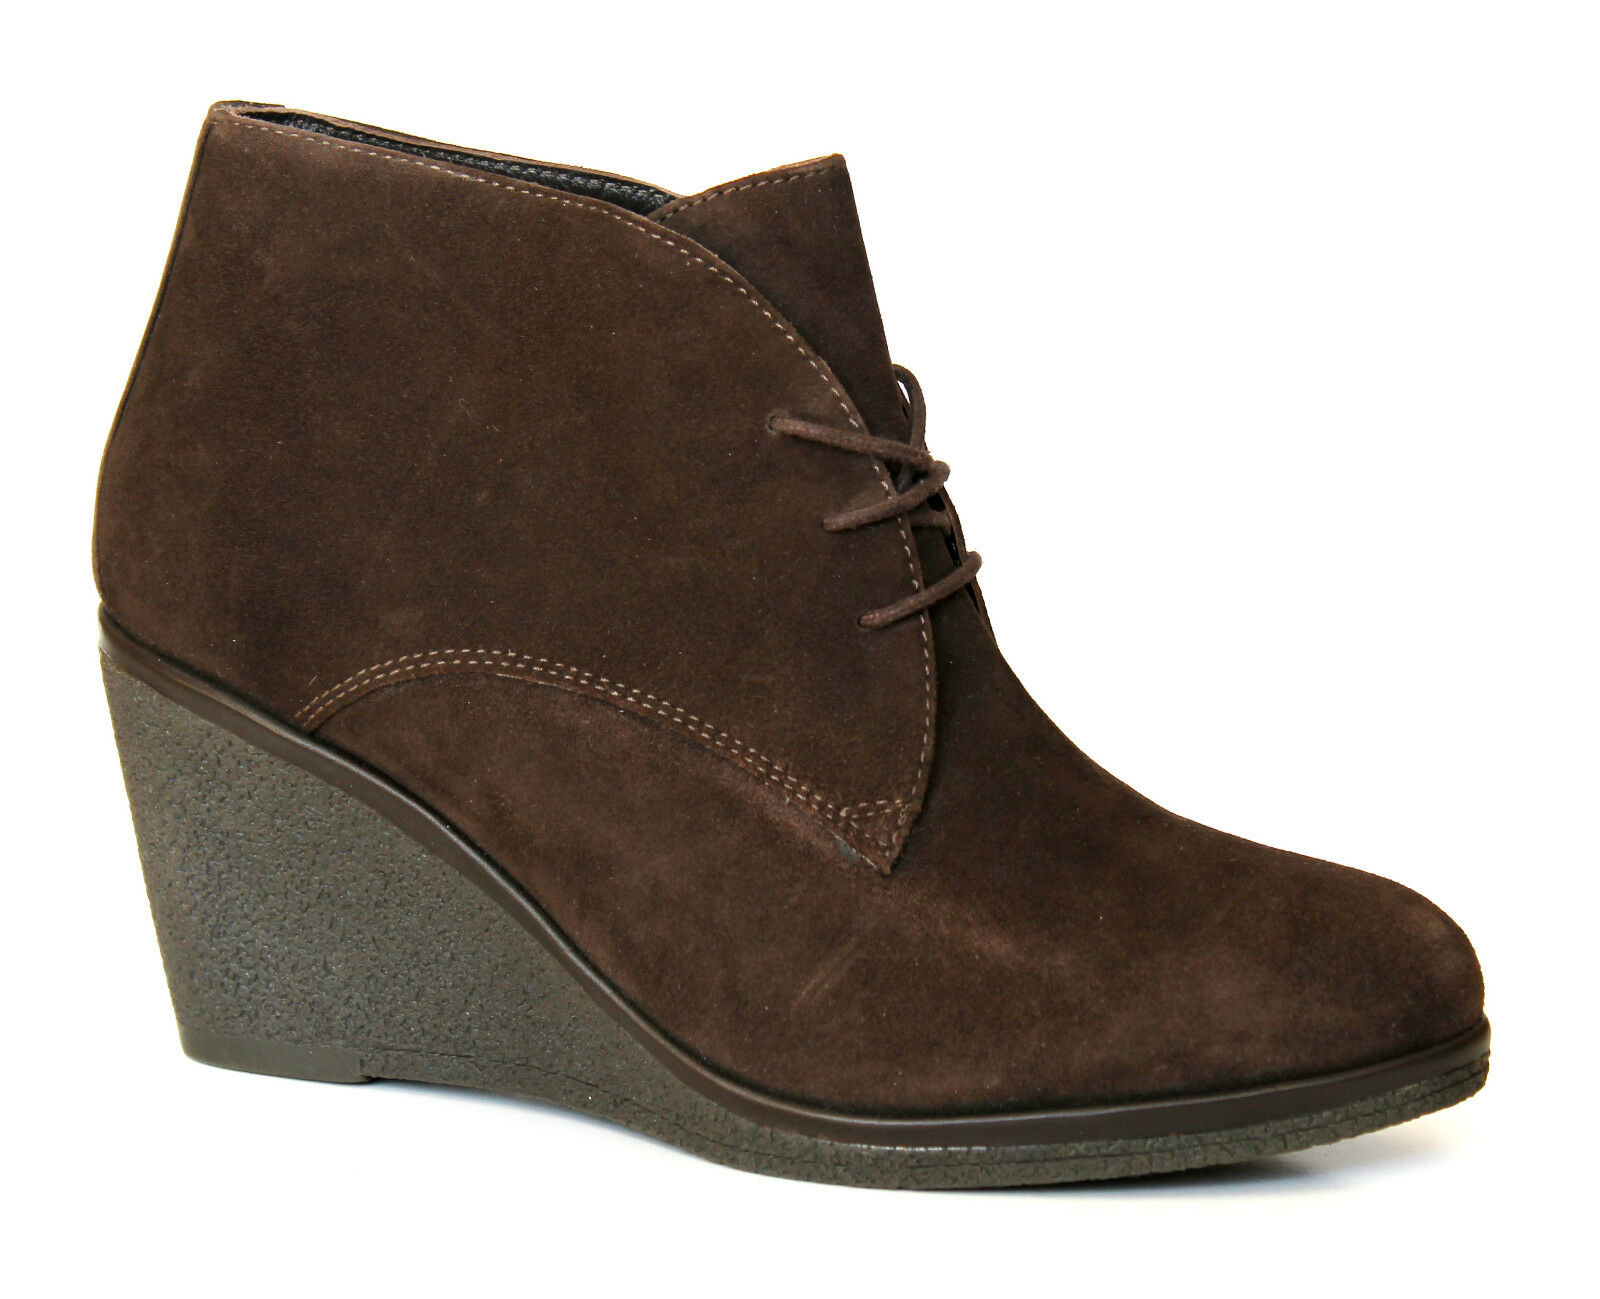 John Lewis Madrid Ladies Brown Suede Leather Wedge Heel Ankle Boots